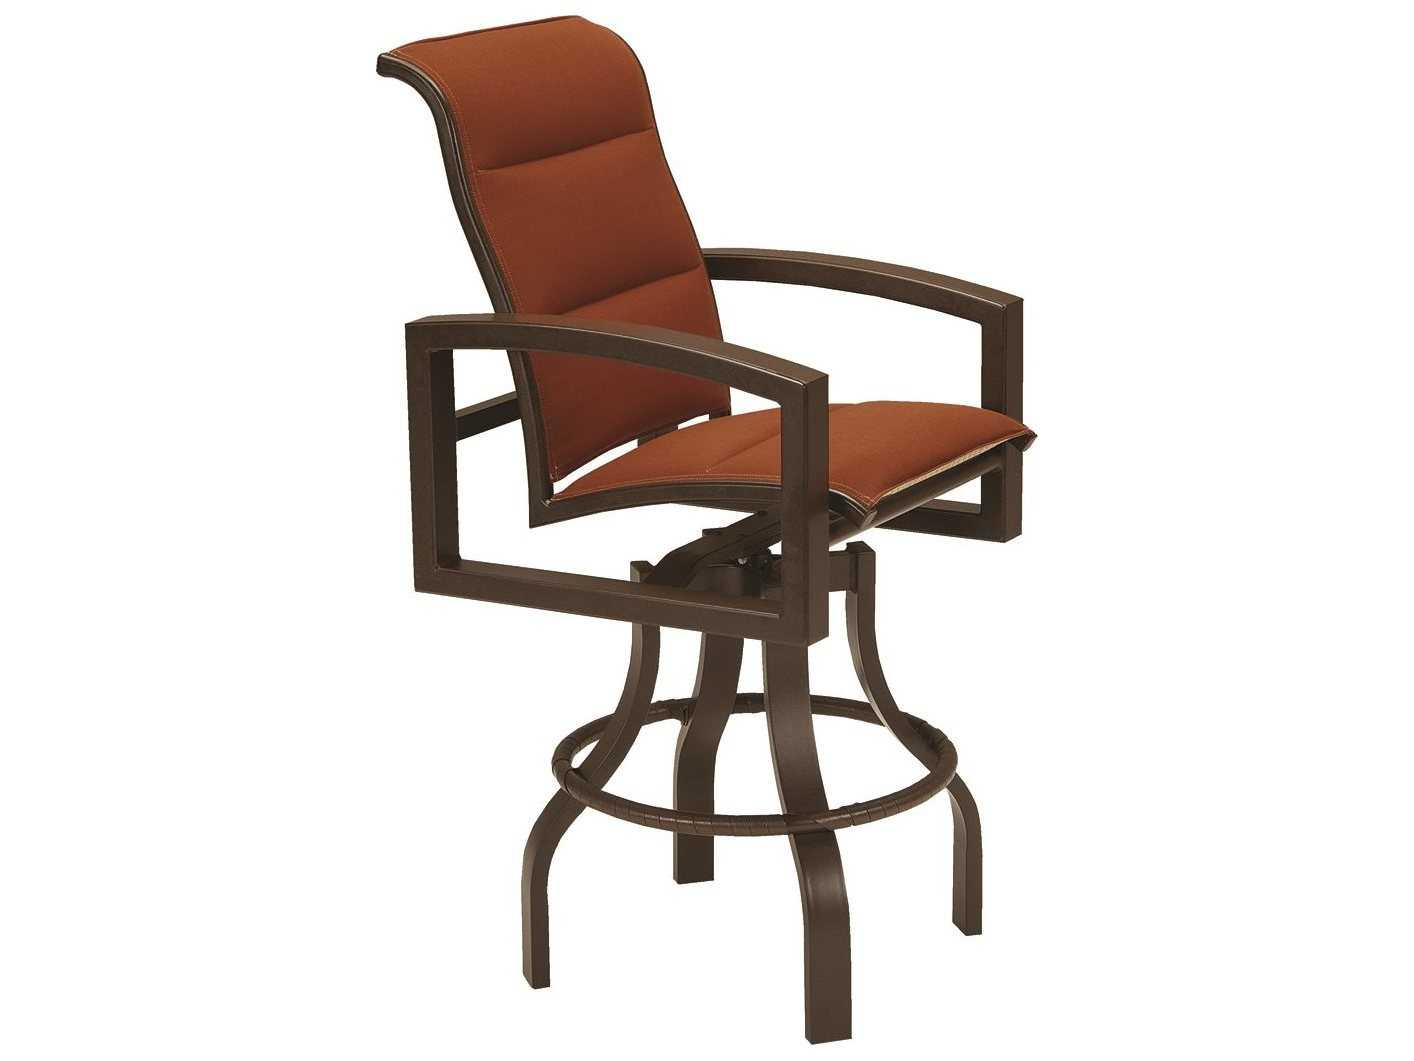 Tropitone Lakeside II Padded Sling Aluminum 28 Bar Stool